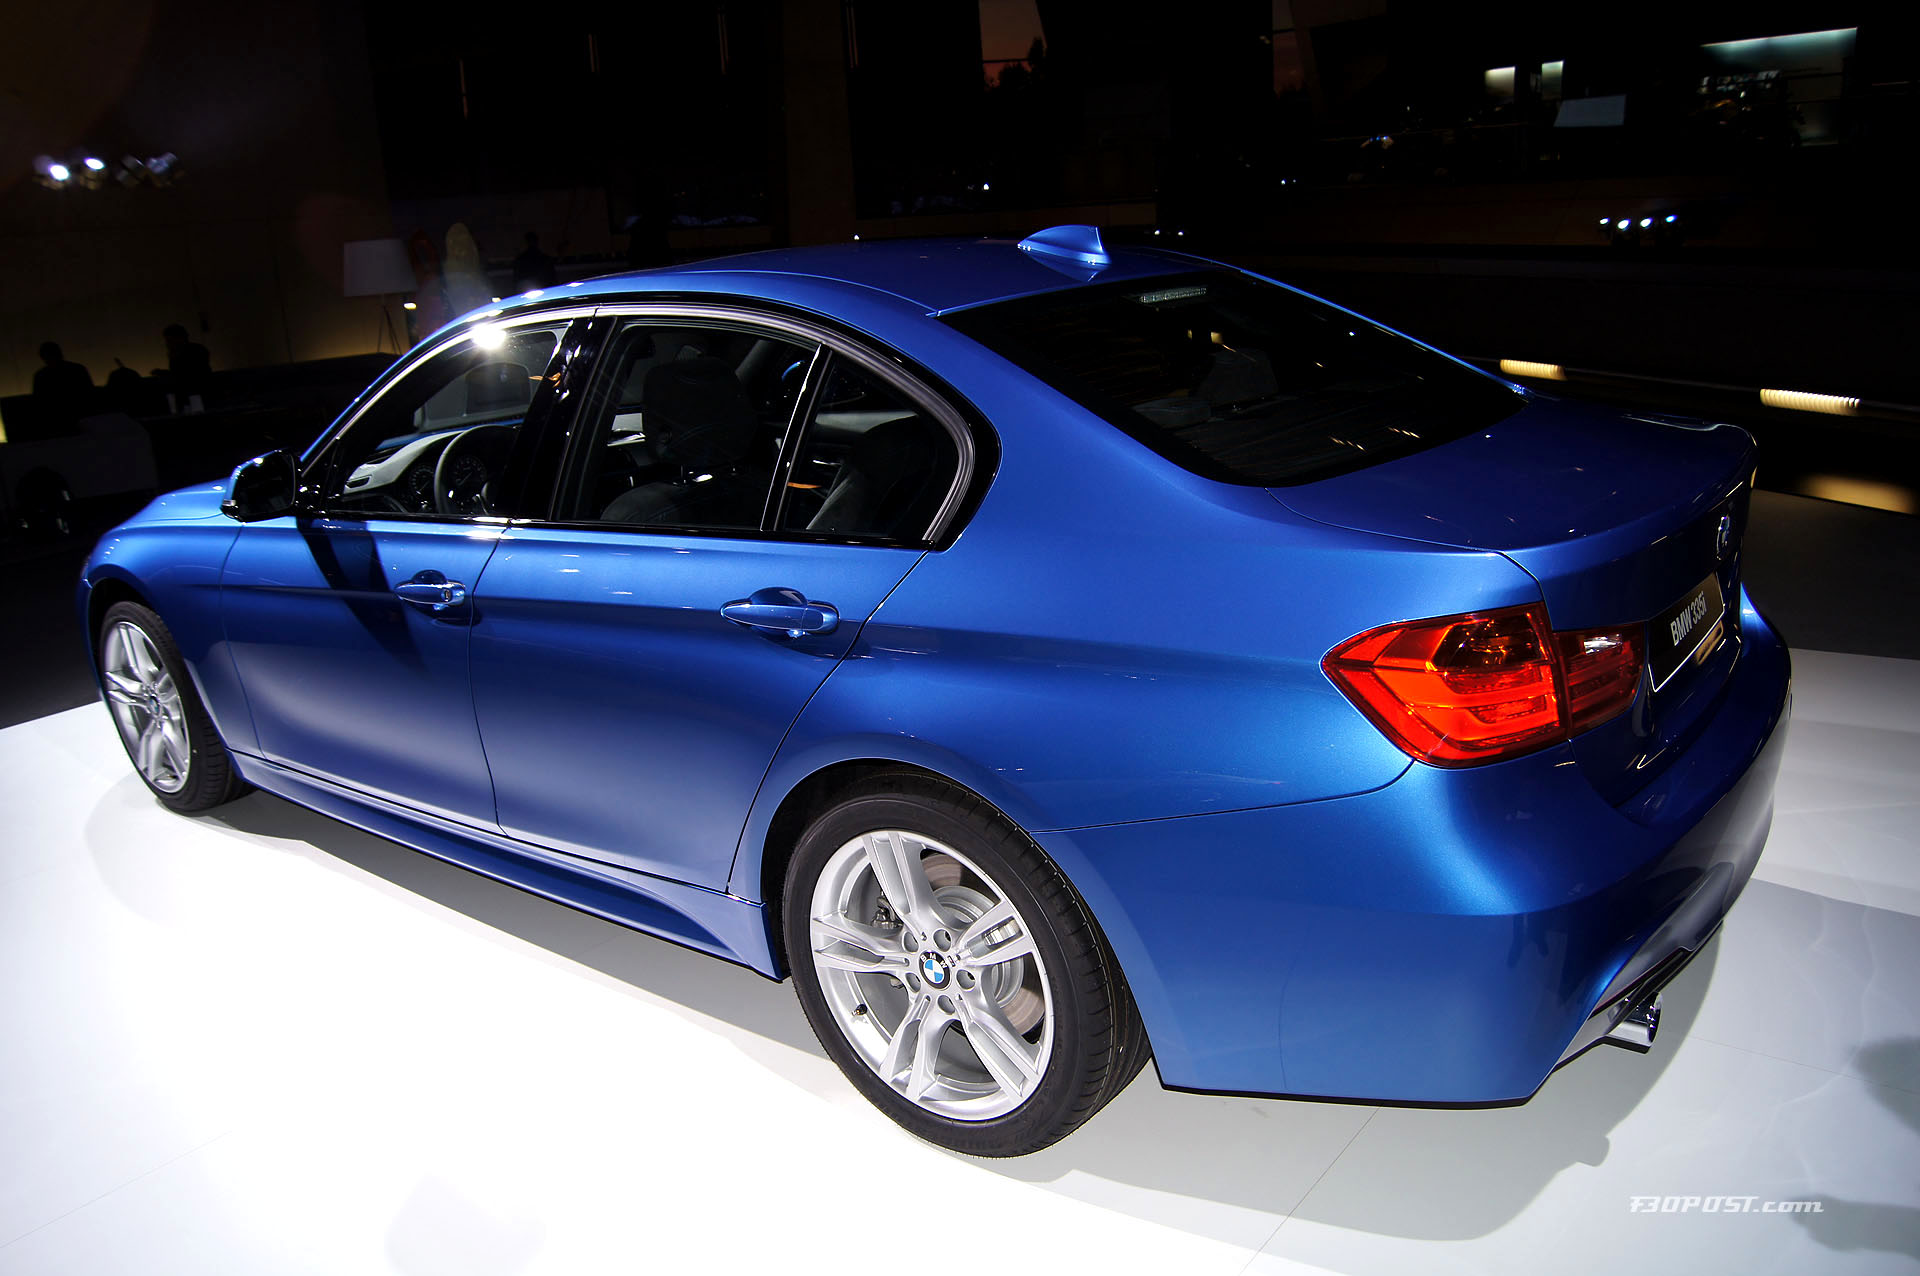 bmw f30 3 series m sport info and photos. Black Bedroom Furniture Sets. Home Design Ideas